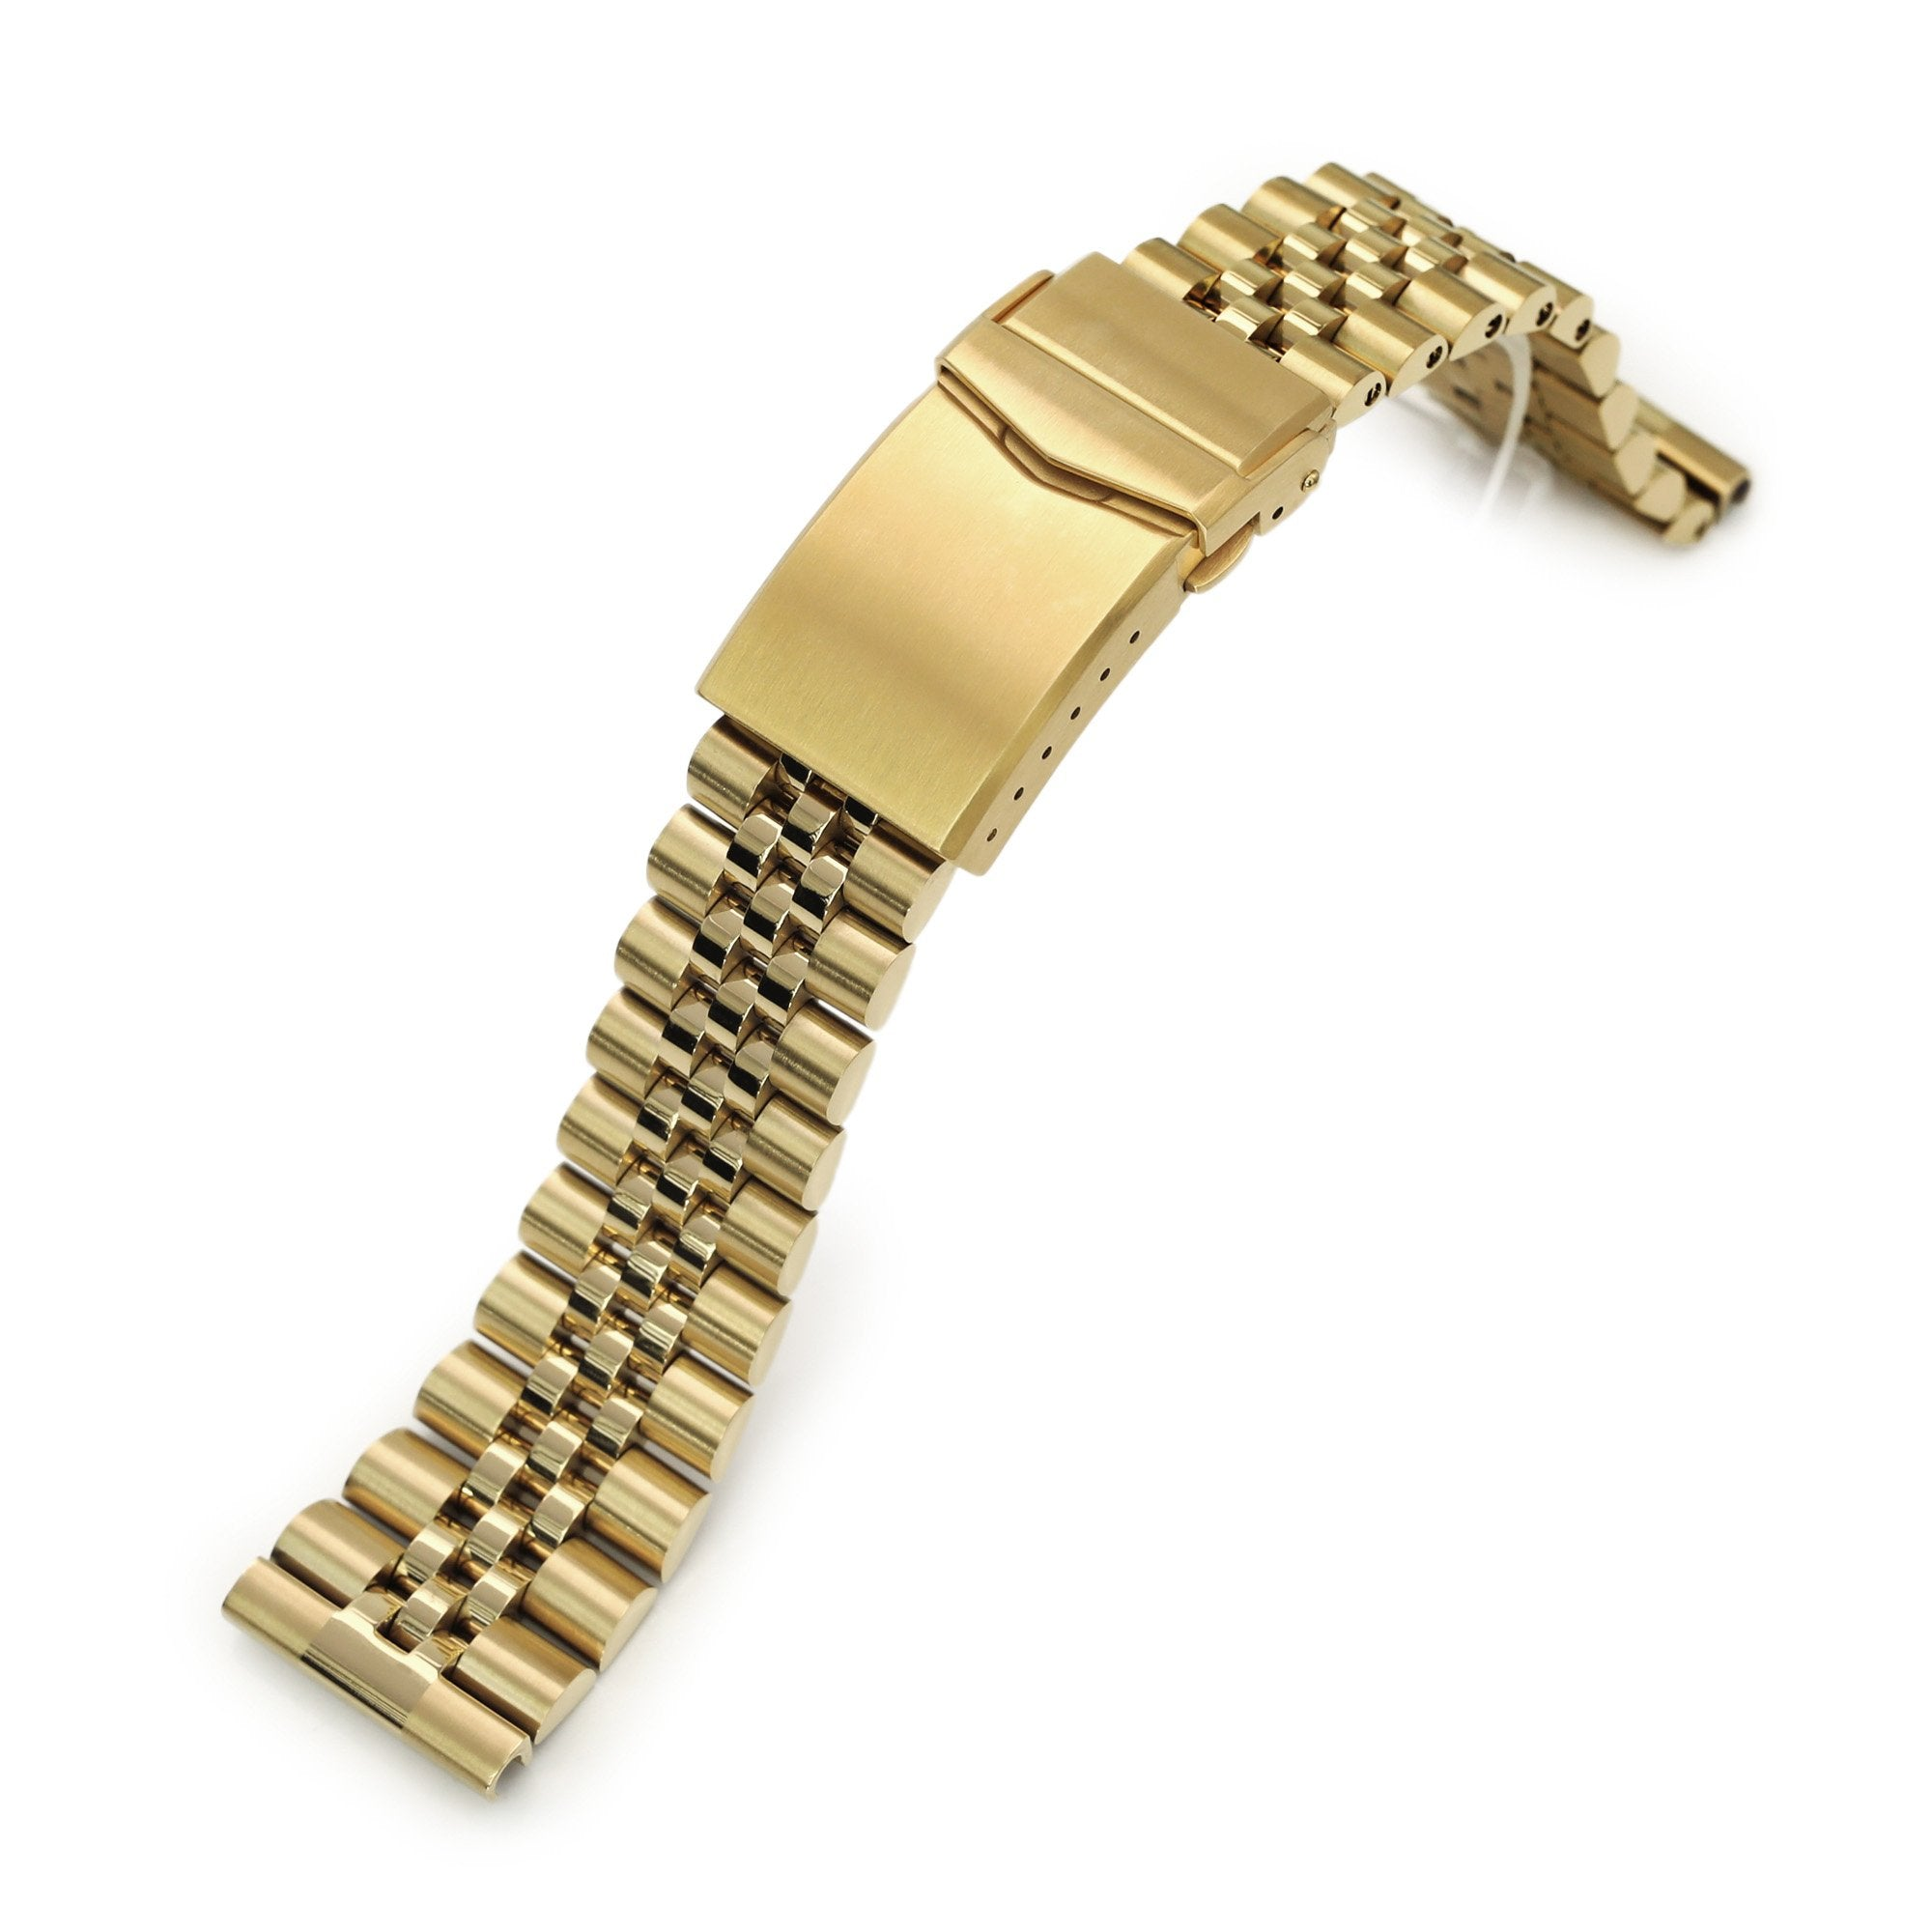 22mm Super-J Louis JUB 316L Stainless Steel Watch Band Straight End, Full IP Gold with Polished Center V-Clasp Strapcode Watch Bands